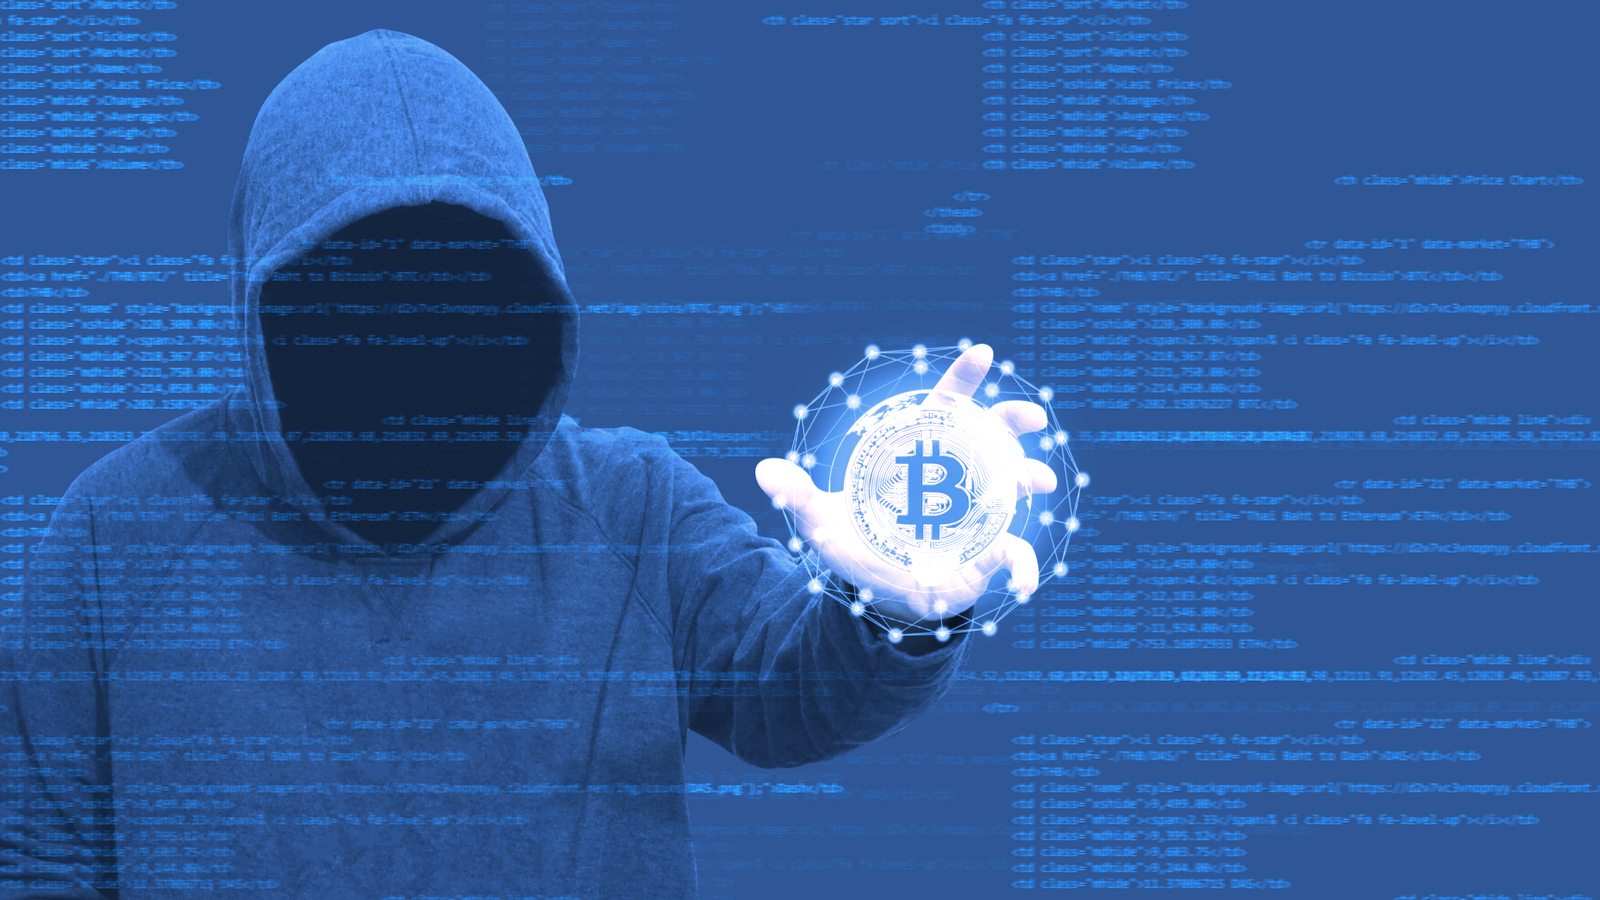 pNetwork hacked - Over 12M USD worth of Bitcoin stolen!